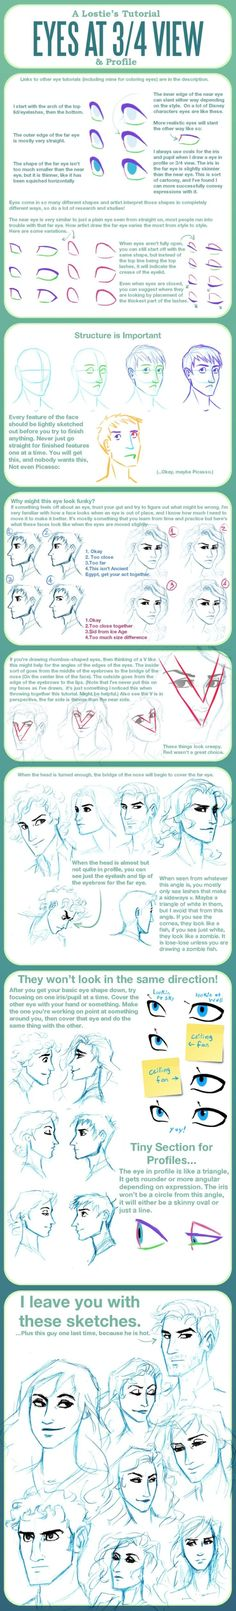 Eye Tutorial at 3/4 View and Profile by lostie815 on deviantART by Bali